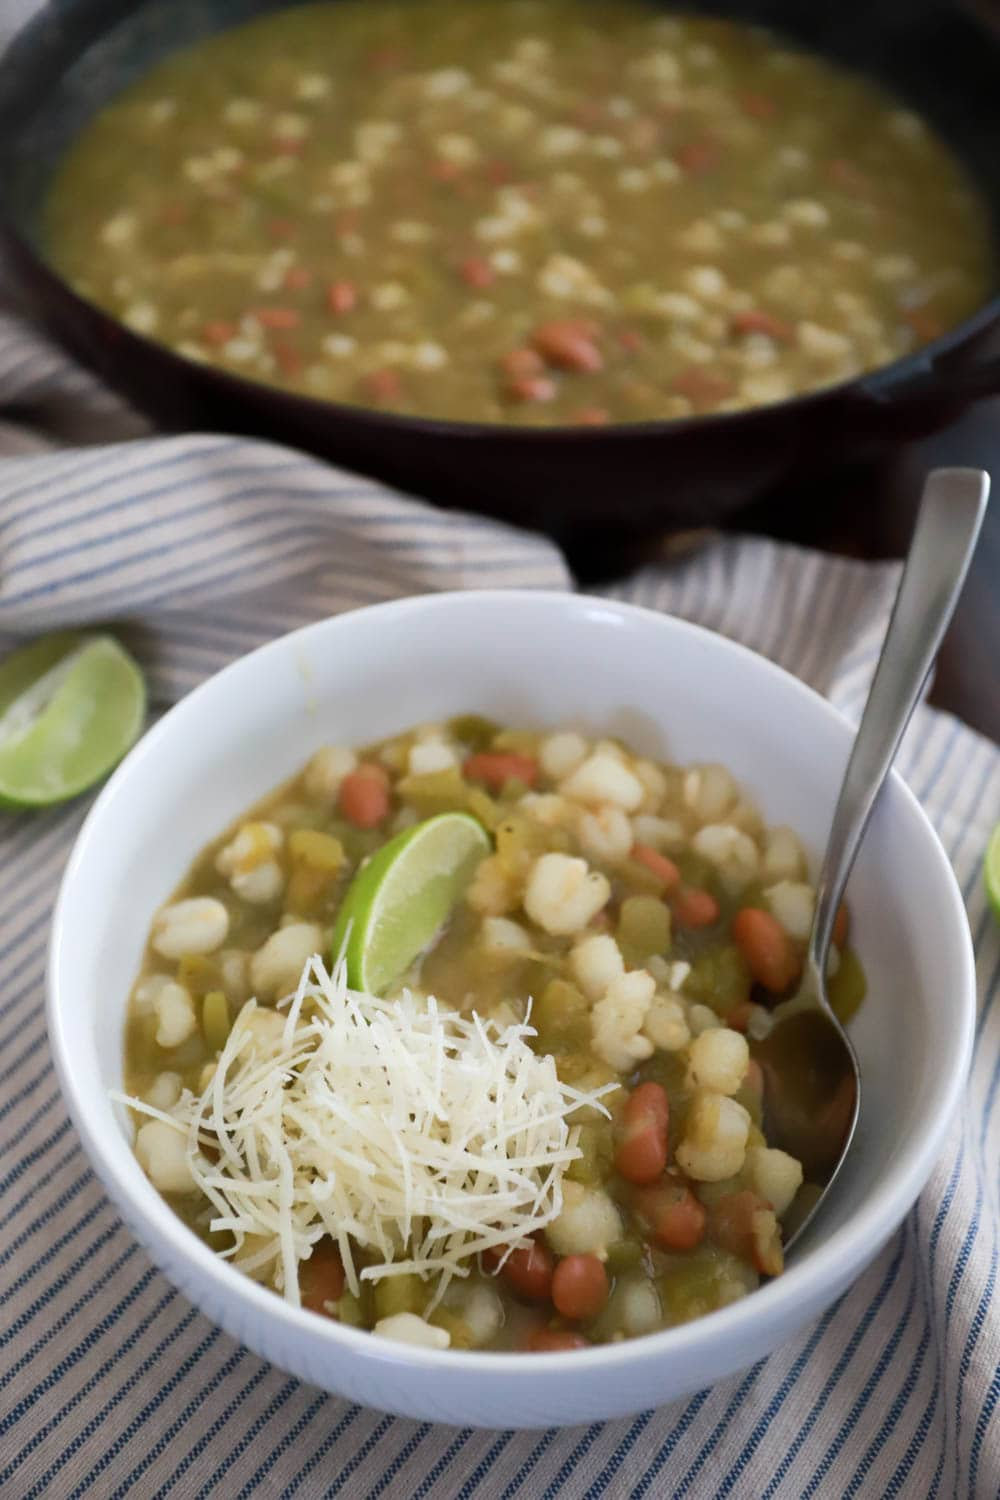 Posole verde with hominy, chilies, and salsa verde. From funnyloveblog.com, how to make posole verde for cinco de mayo.